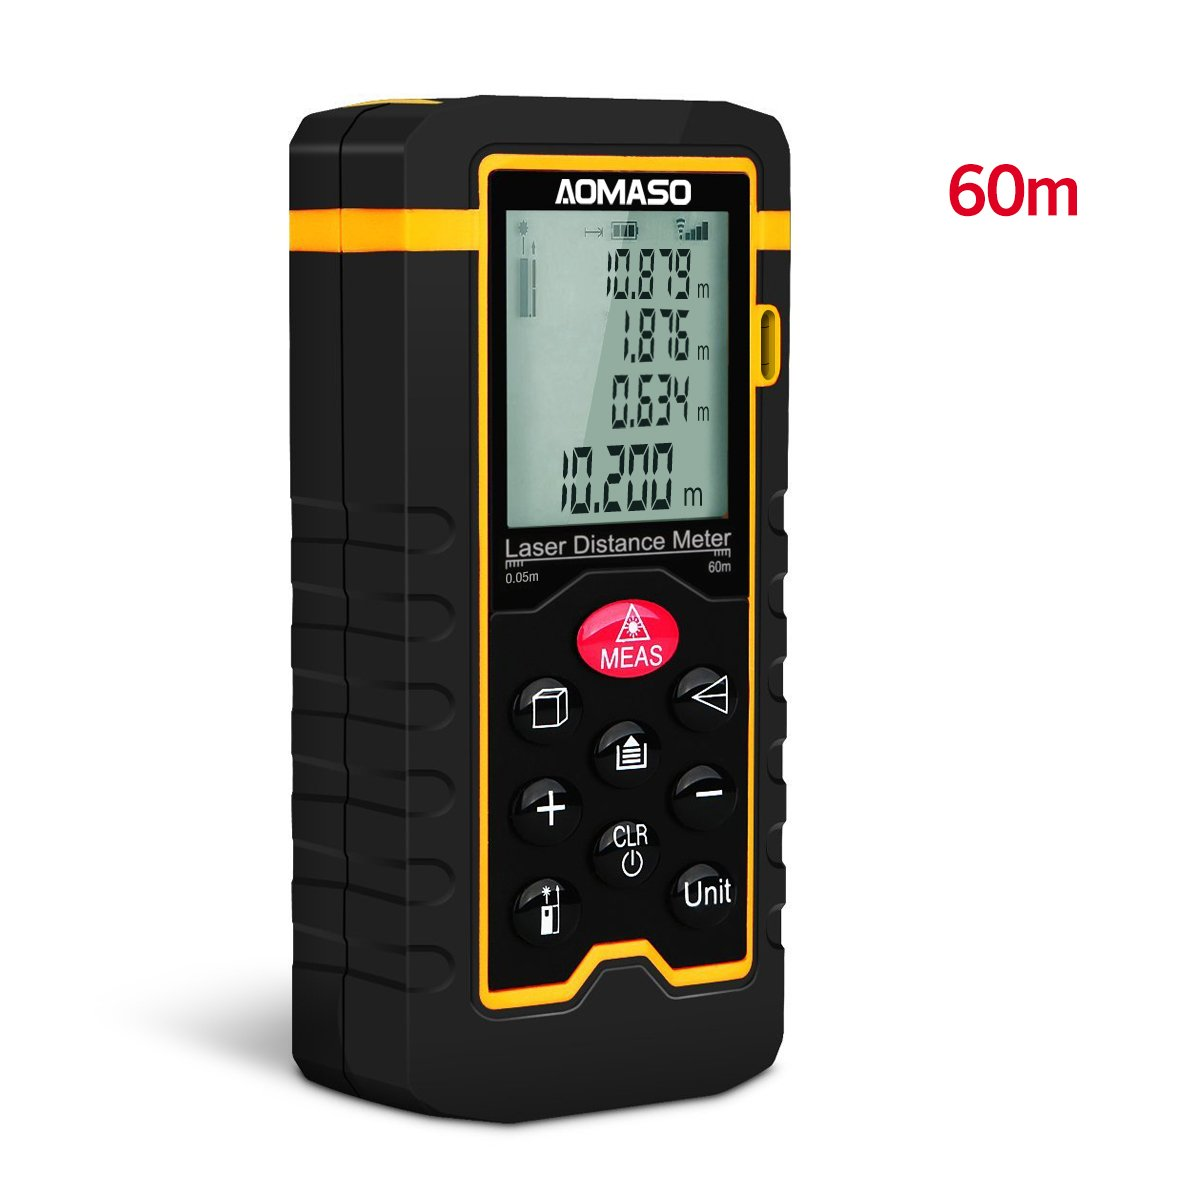 Laser Distance Measurement, Aomaso 60Meter  High Precision Handheld Digital Laser Tape Measure with LCD Backbit,Water Protection IP54 for Volume/Area/Pythagorean Continuous Measurement Class II